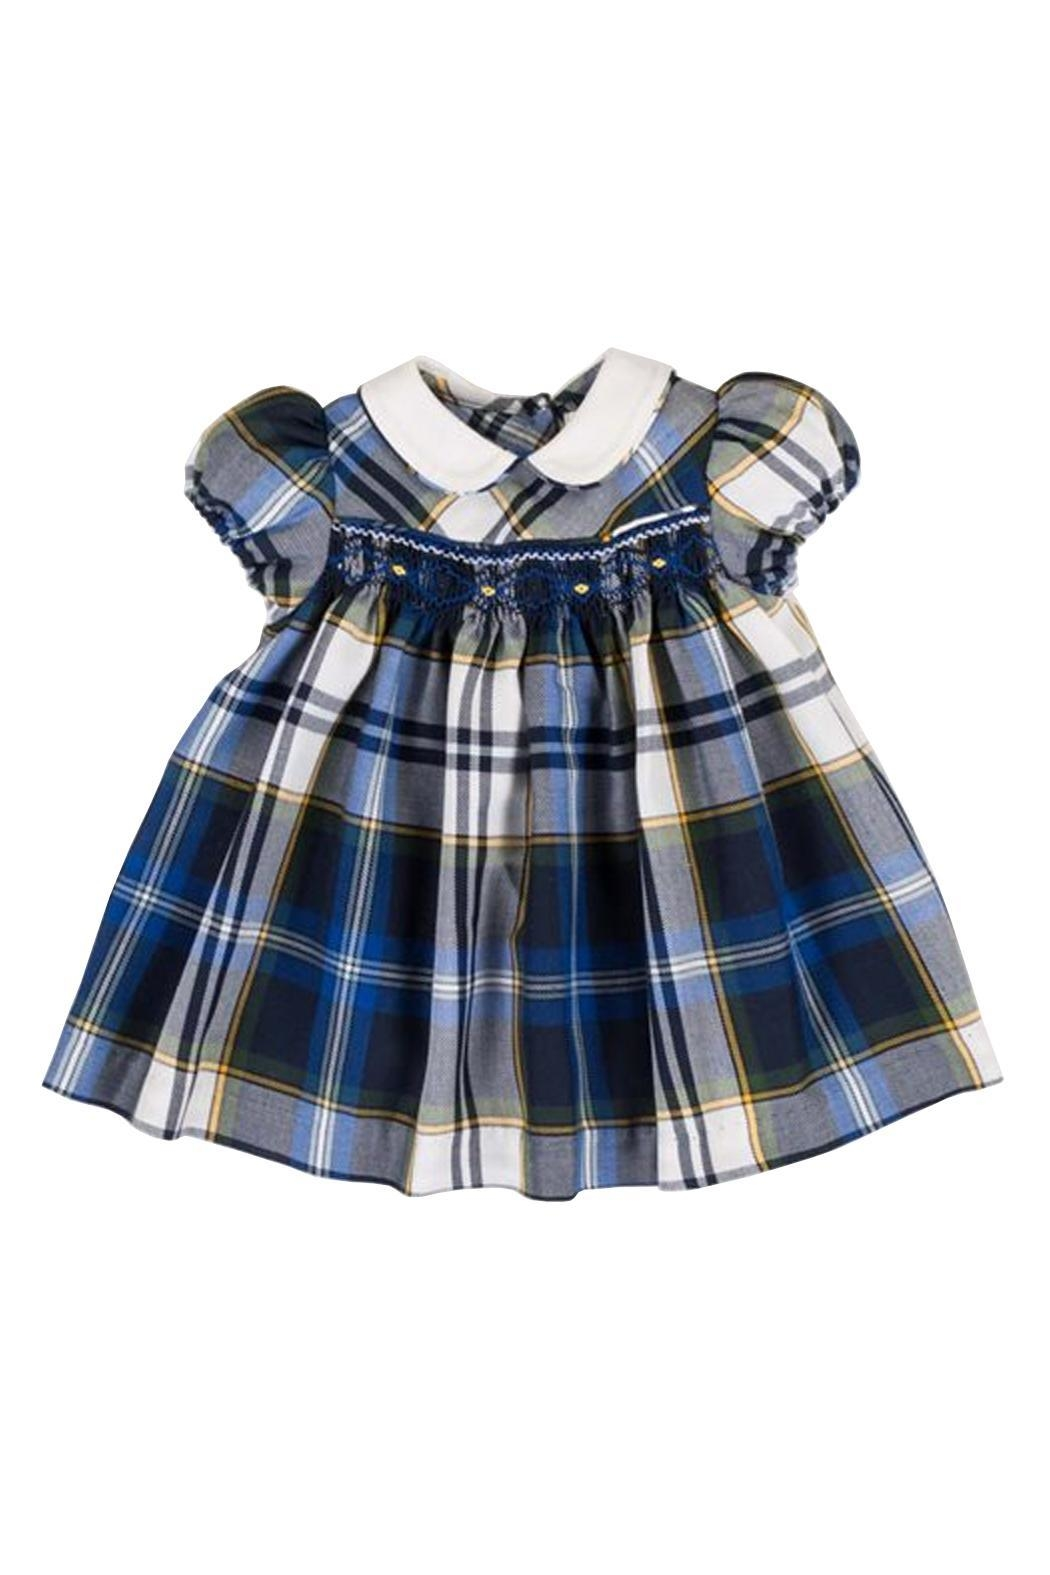 Malvi & Co. Smocked Tartan Dress. - Main Image